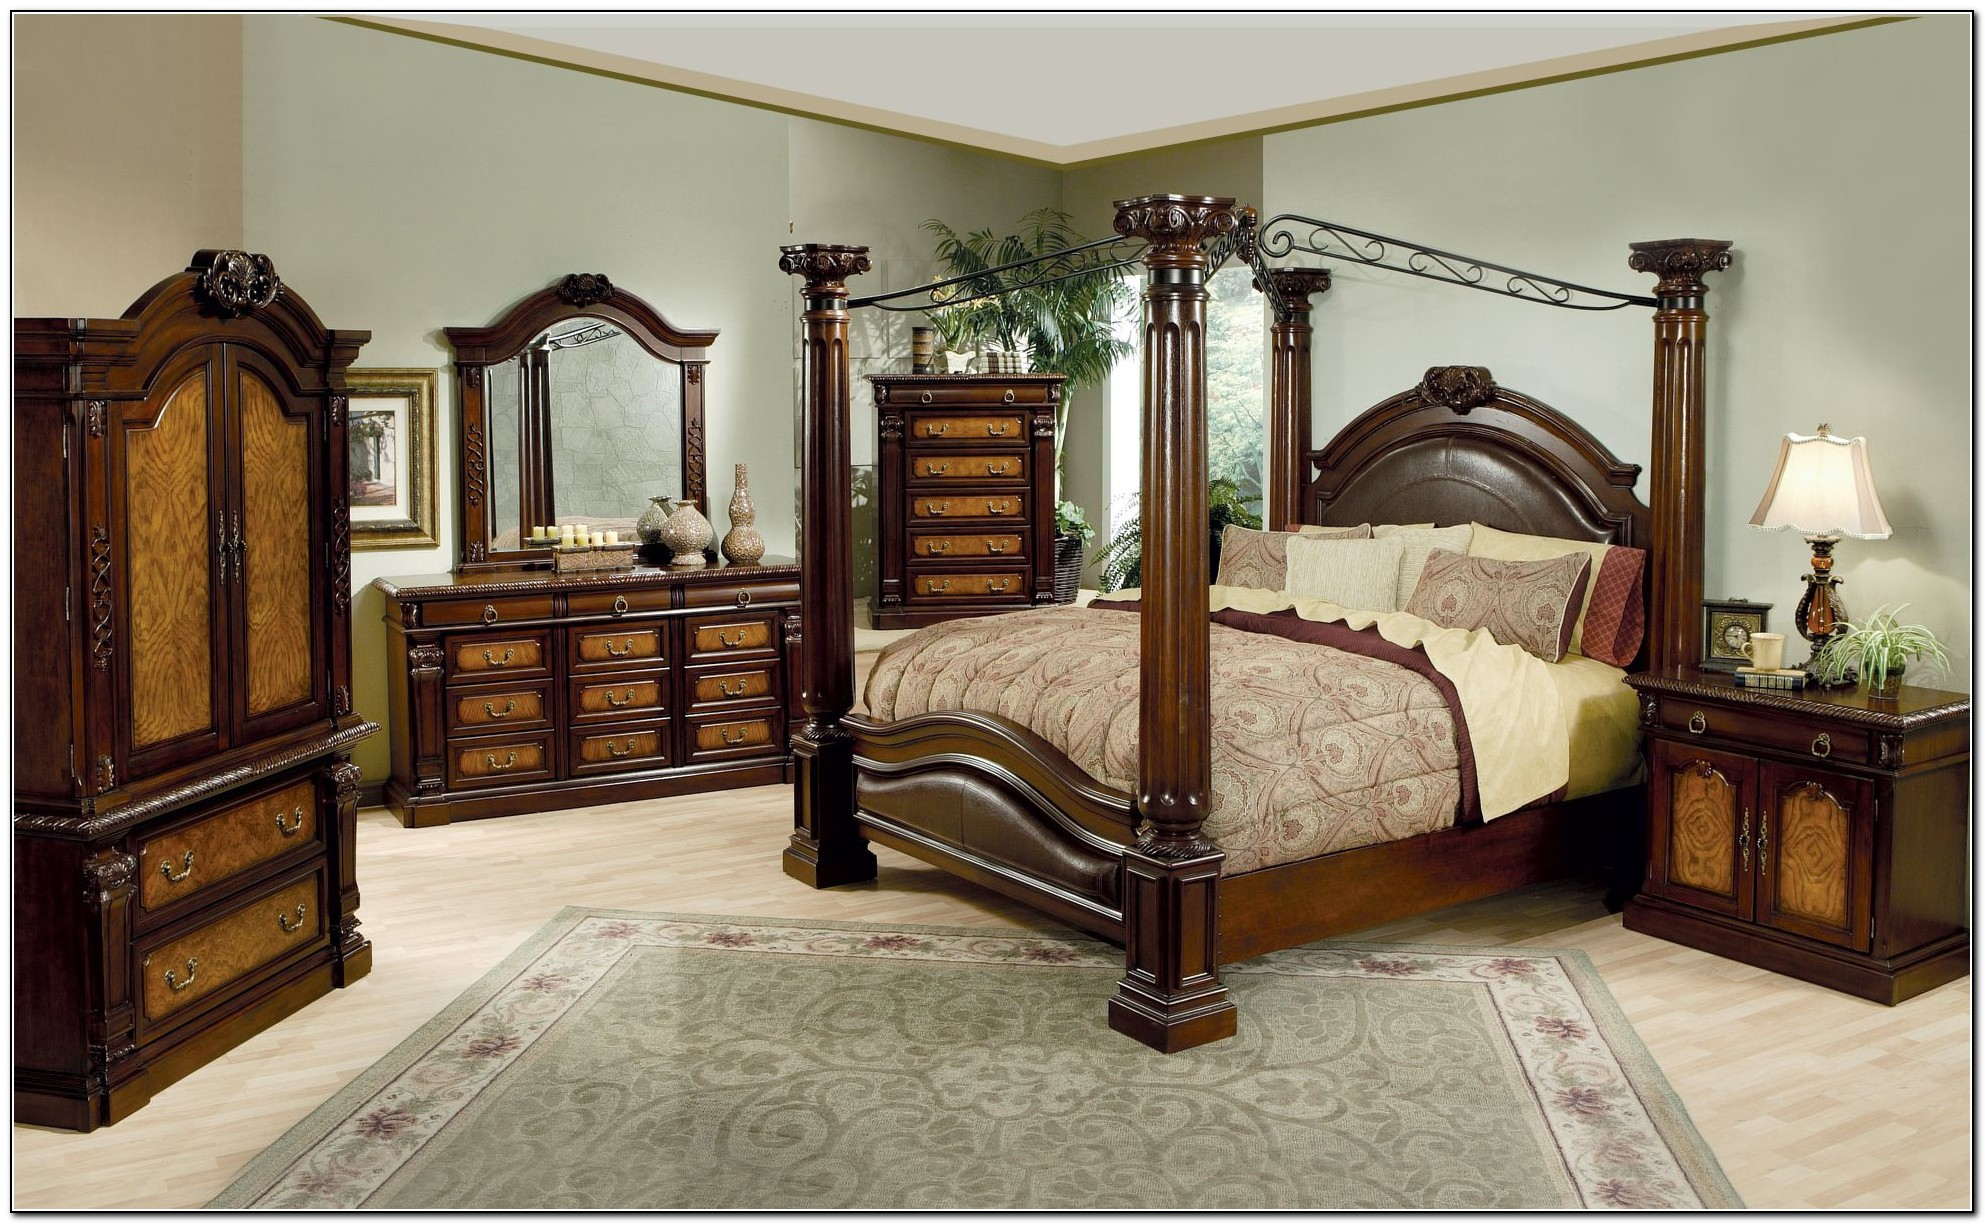 King Size Canopy Bed Frame Beds Home Design Ideas